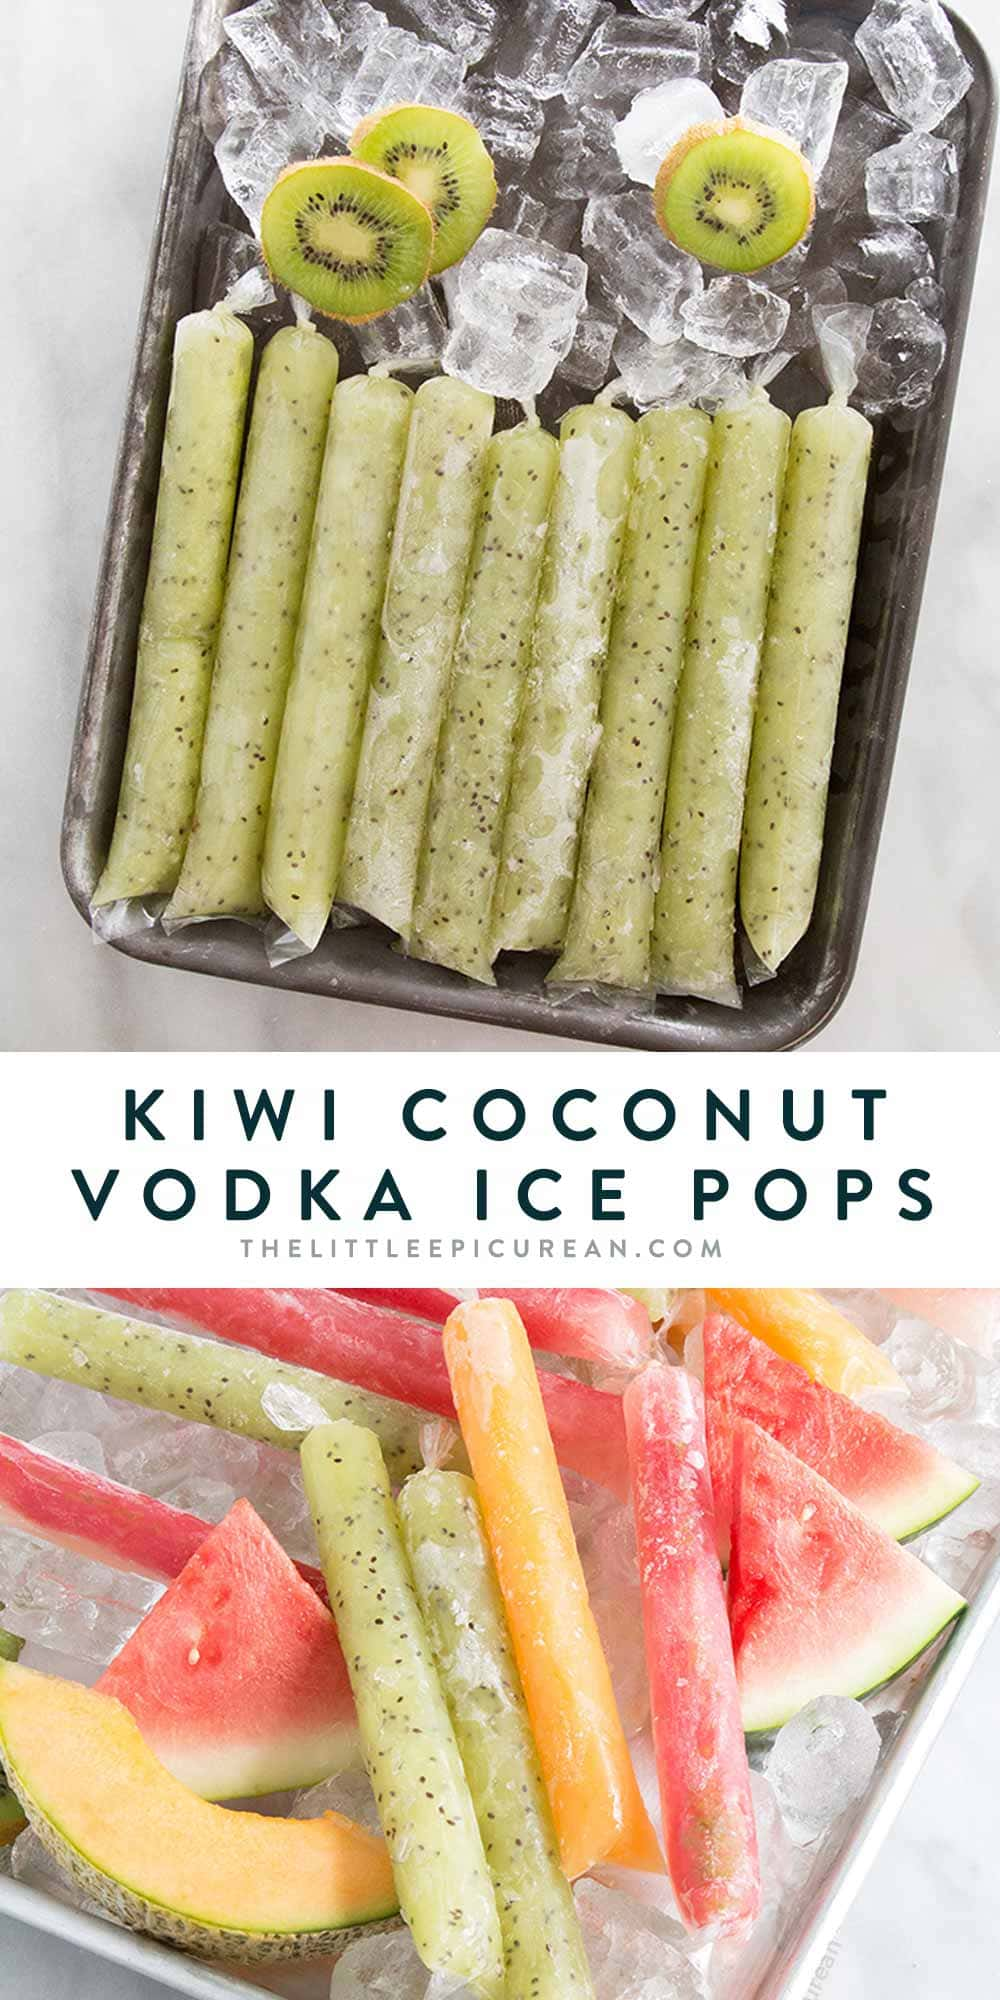 Kiwi Coconut Vodka Pops